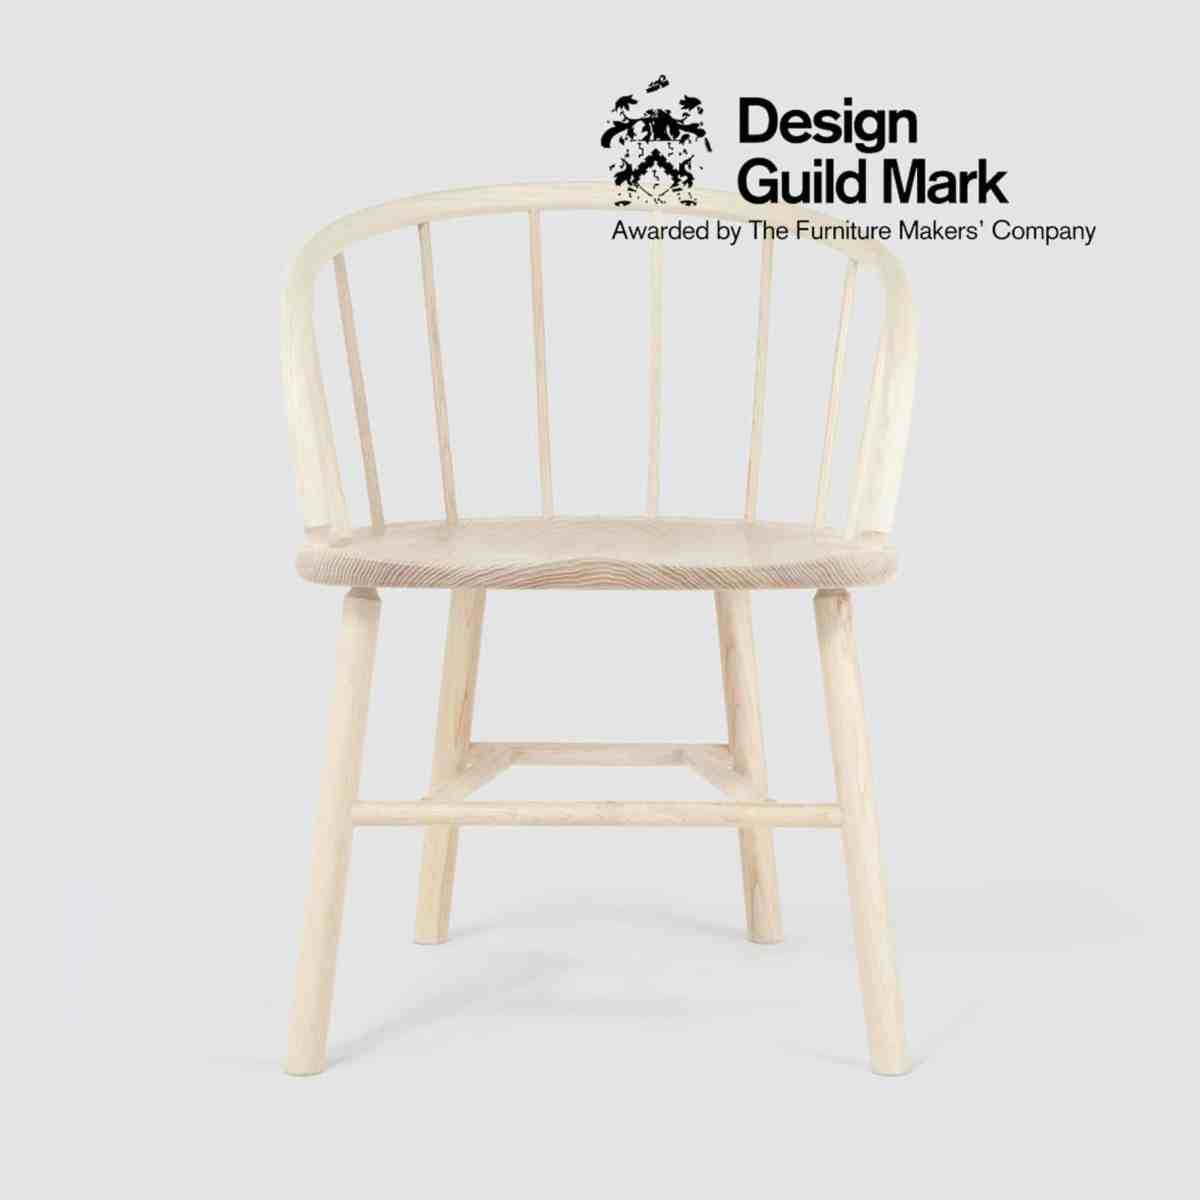 dorset-series-one-hardy-chair-ash-another-country-001